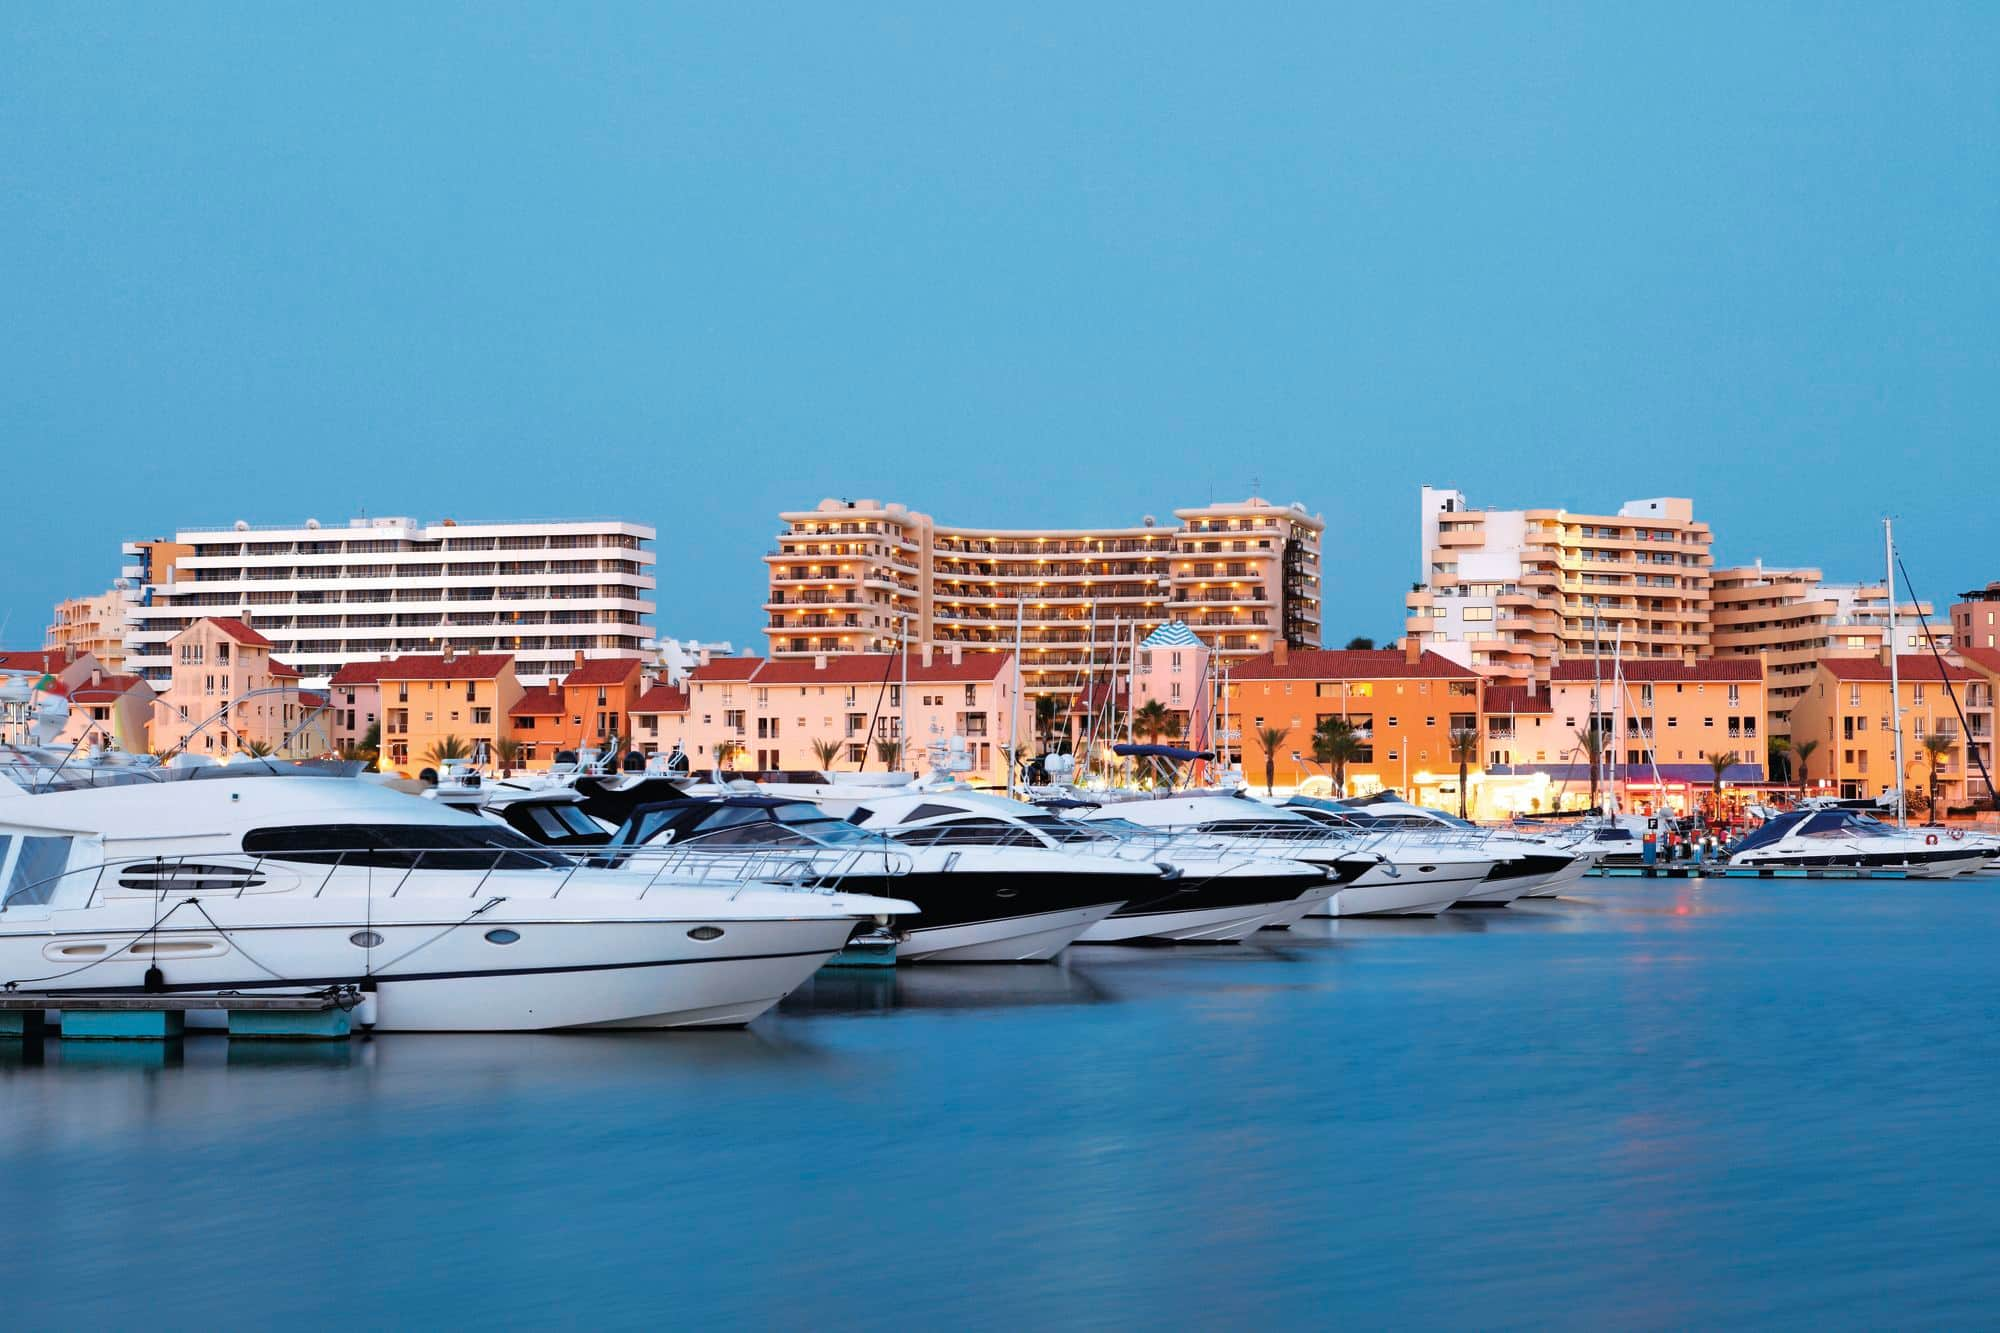 Hotels in Vilamoura